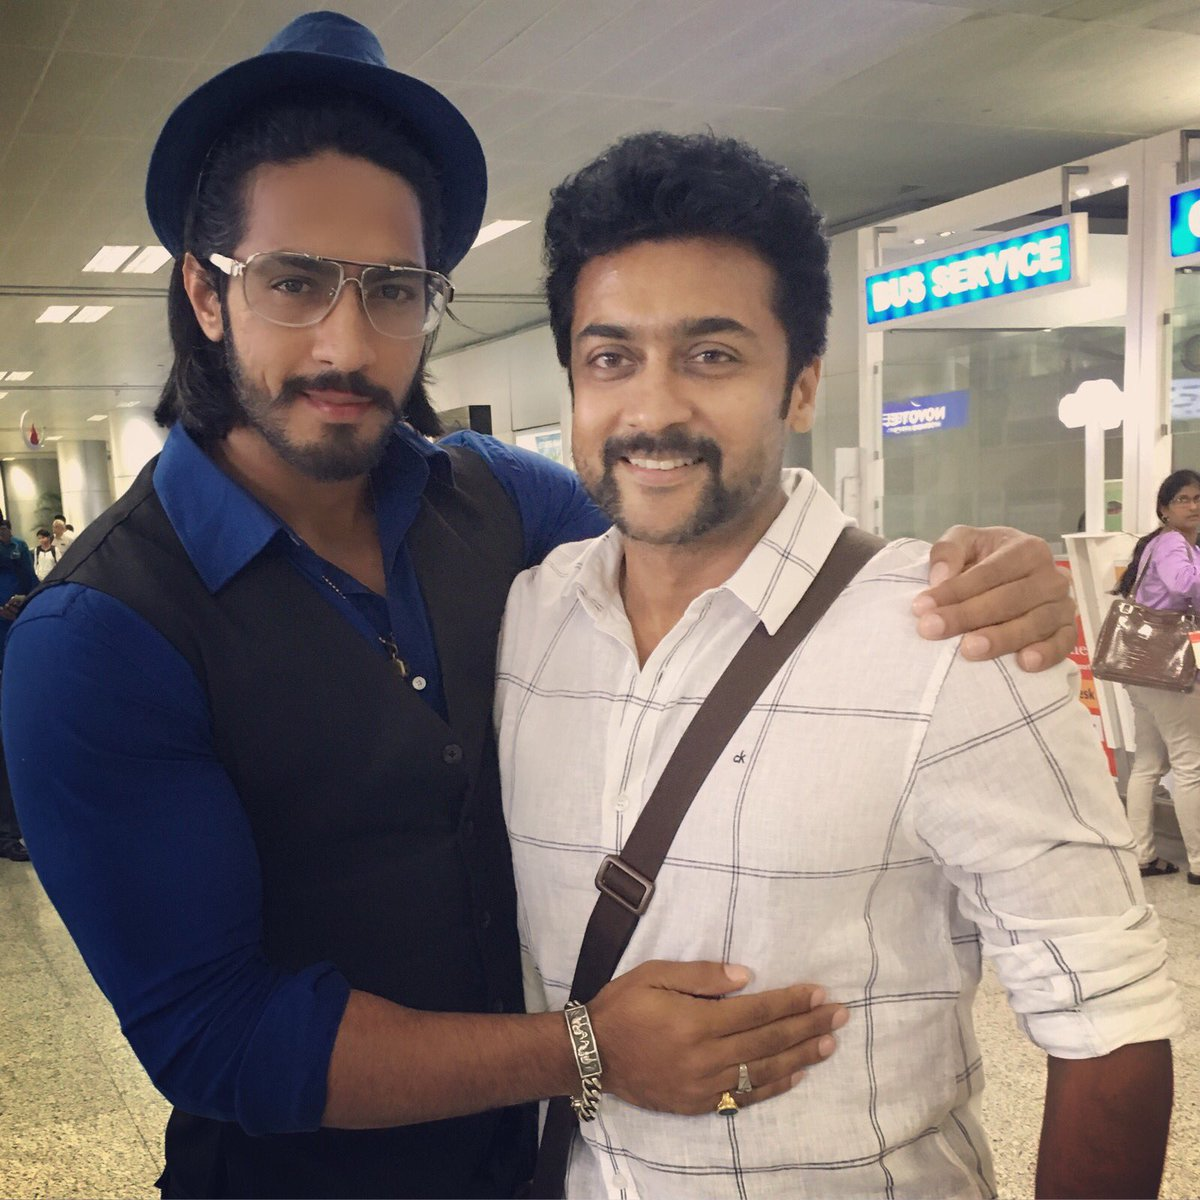 Wishing my Rocking Hero Durai Singam @Suriya_offl a very Happy Birthday! Doing a film with you is and will remain one of my most memorable achievements of life!    Love,   Vitthal Prasad #S3   #HappyBirthdaySURIYA <br>http://pic.twitter.com/0SKJtjaGvh